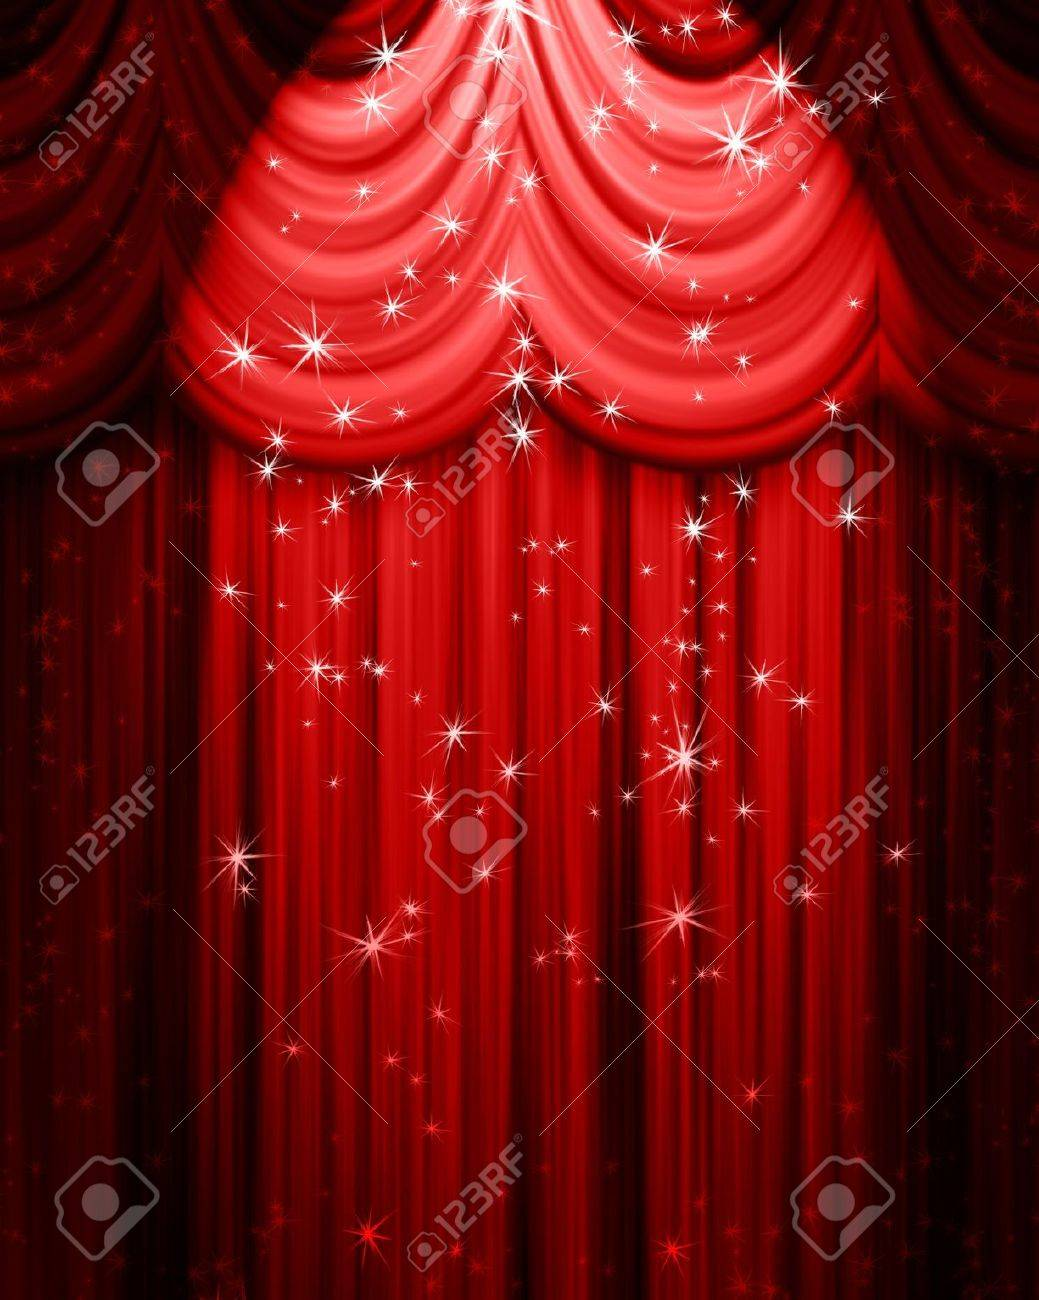 Stage curtains spotlight - Red Theatre Curtain With Spotlight And Stars Stock Photo 13504379